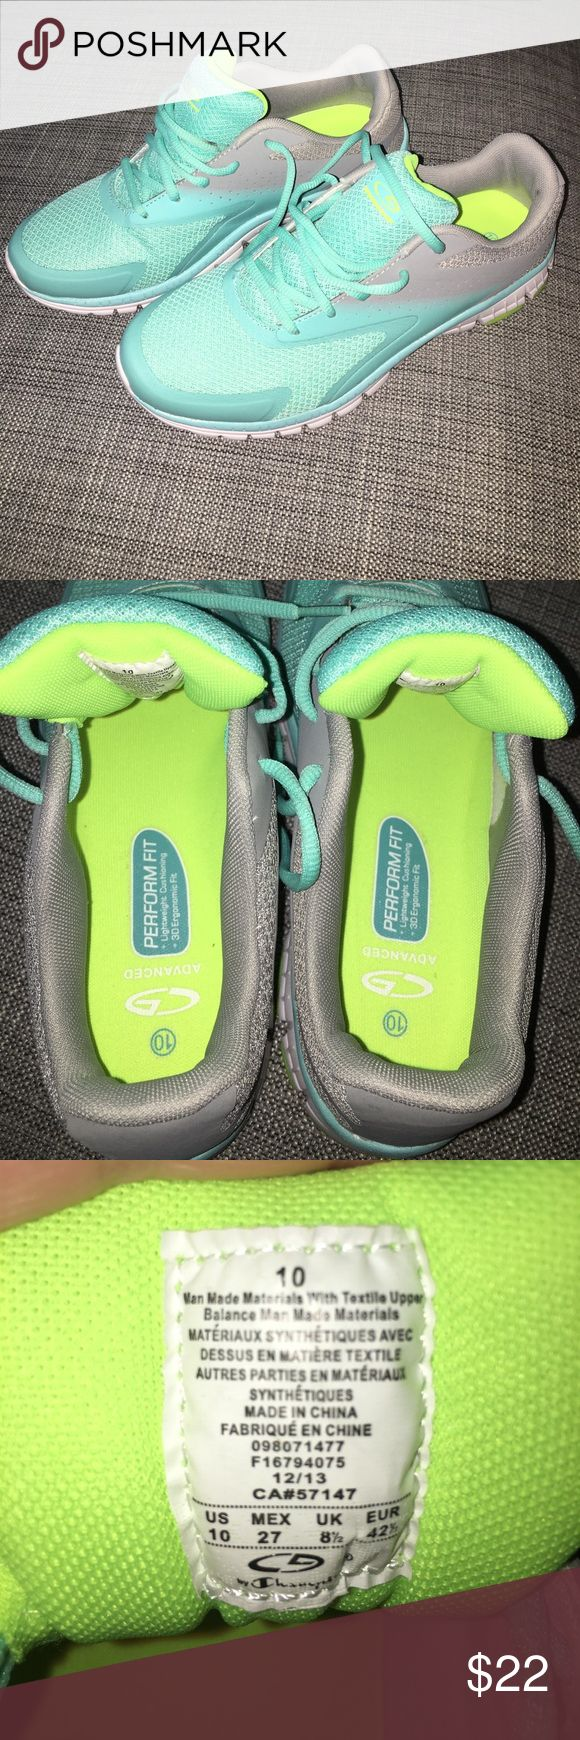 """Champion C9 running shoes gray & turquoise (it was described as """"mint"""" on the box) running shoes. worn once on the treadmill but they don't fit my feet right. small spot on back of right shoe - price adjusted accordingly. Champion Shoes Sneakers"""